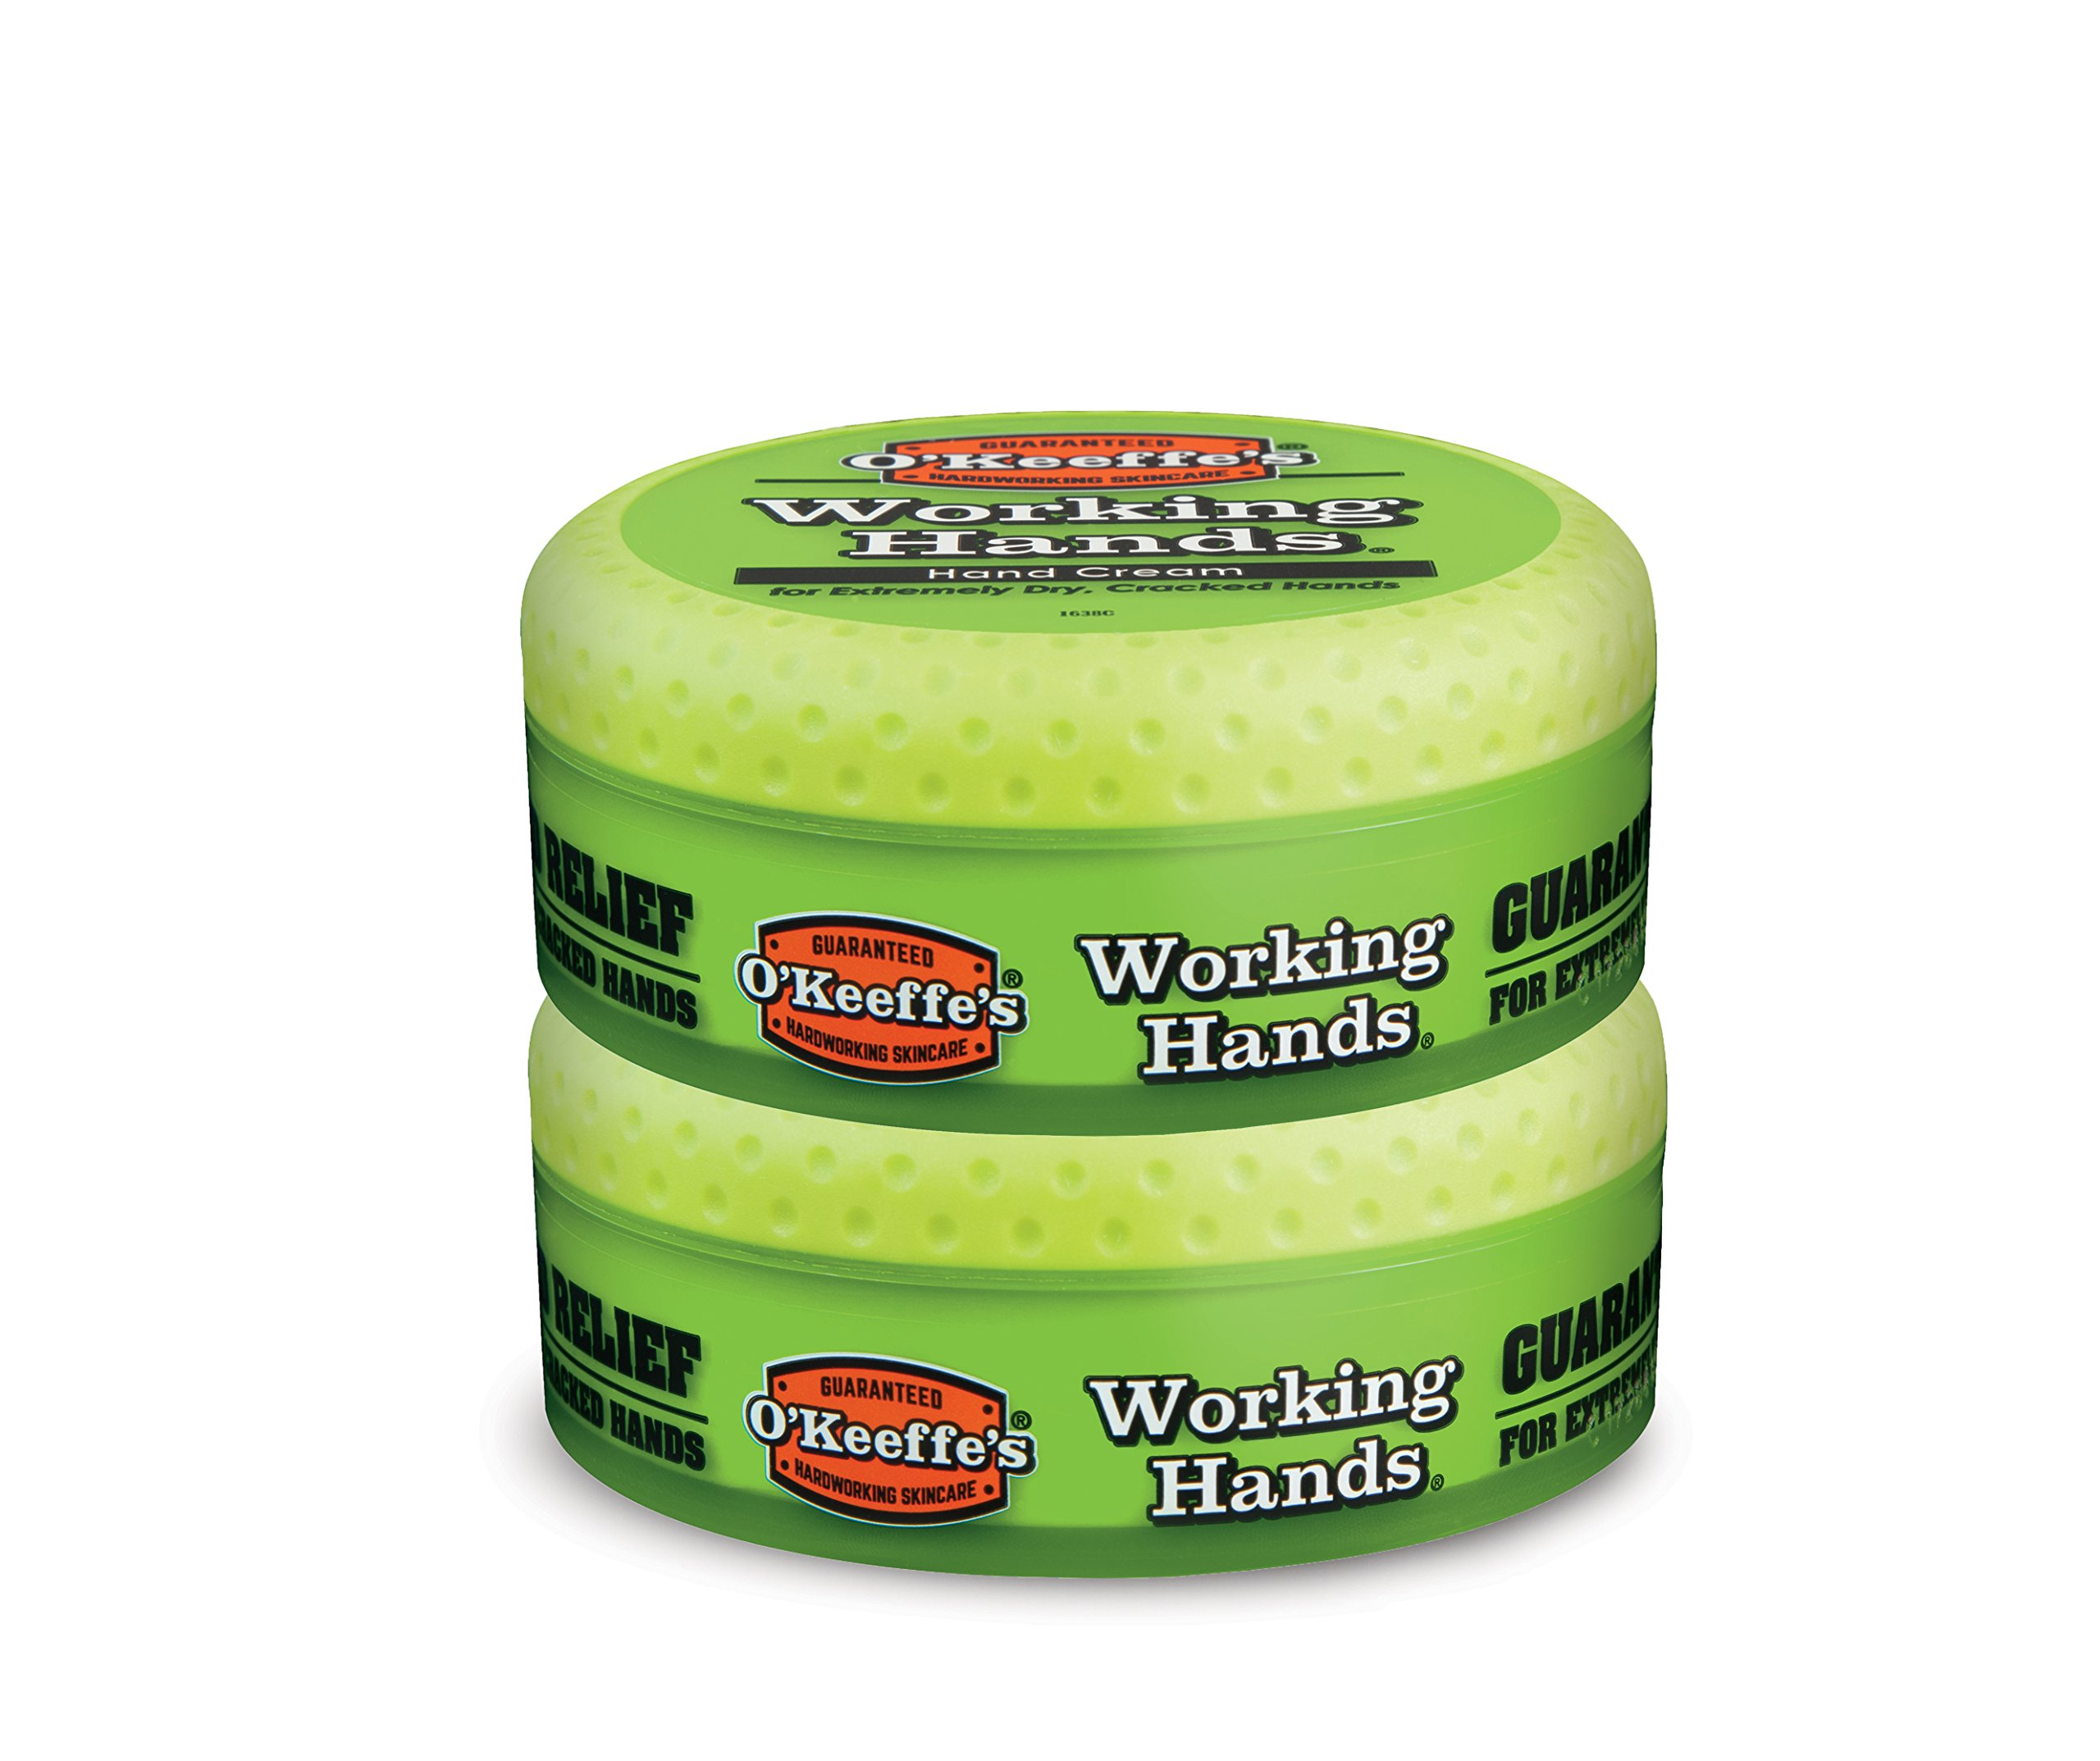 O'Keeffe's Working Hands Hand Cream, 3.4 ounce Jar, (Pack of 2) by O'Keeffe's